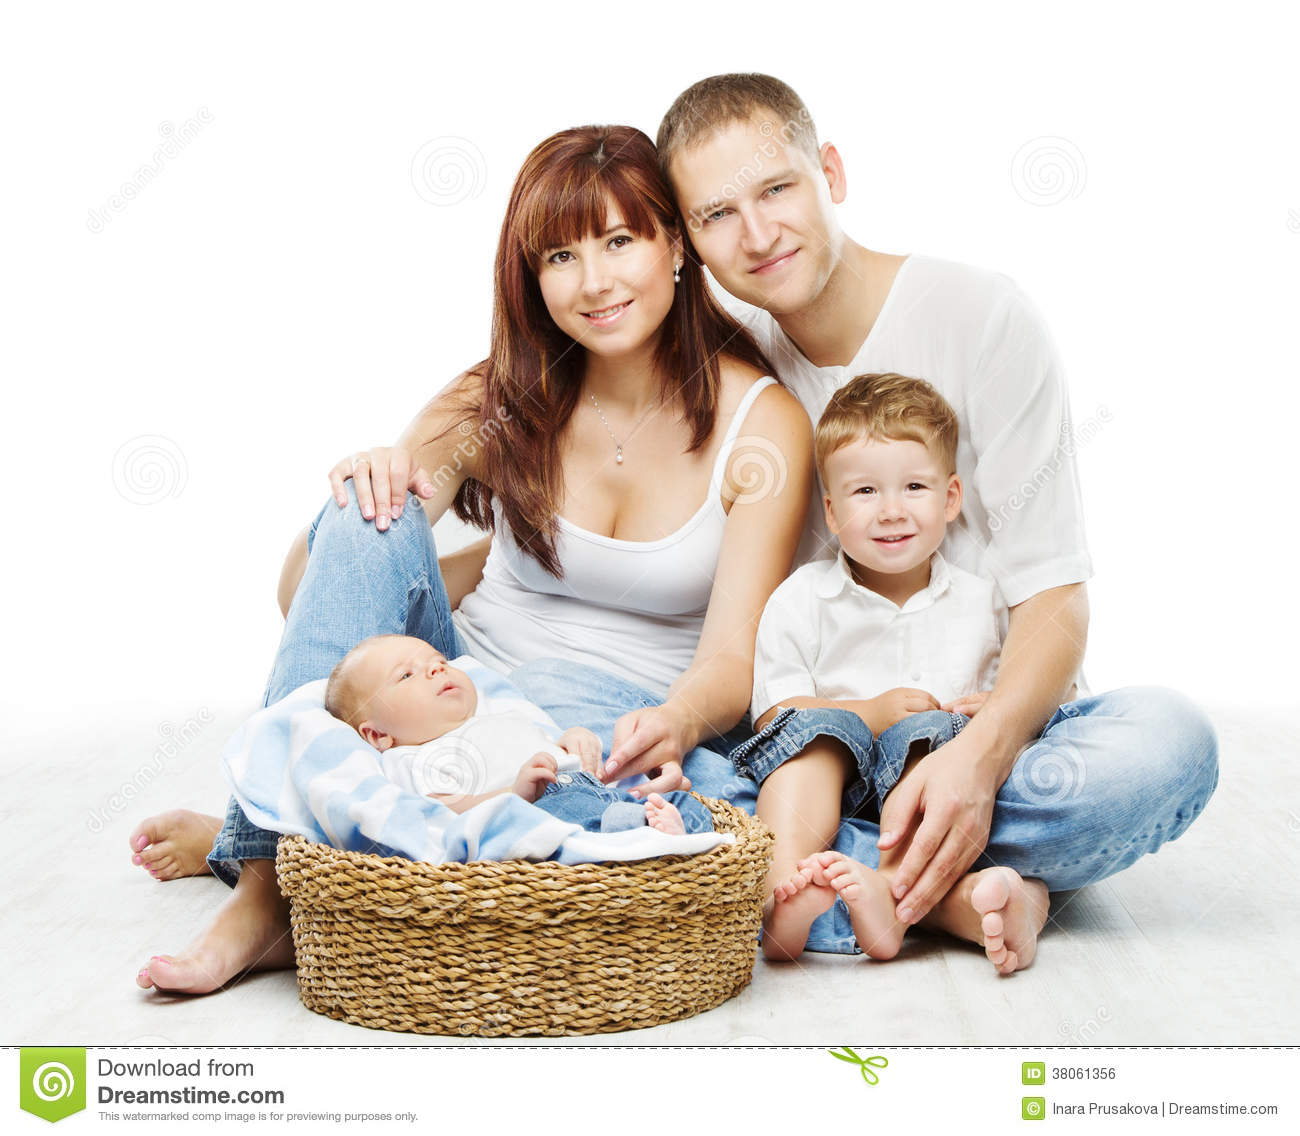 Young Family Four Persons, Smiling Father Mother Two ...: http://dreamstime.com/royalty-free-stock-image-young-family-four-persons-smiling-father-mother-two-children-image38061356